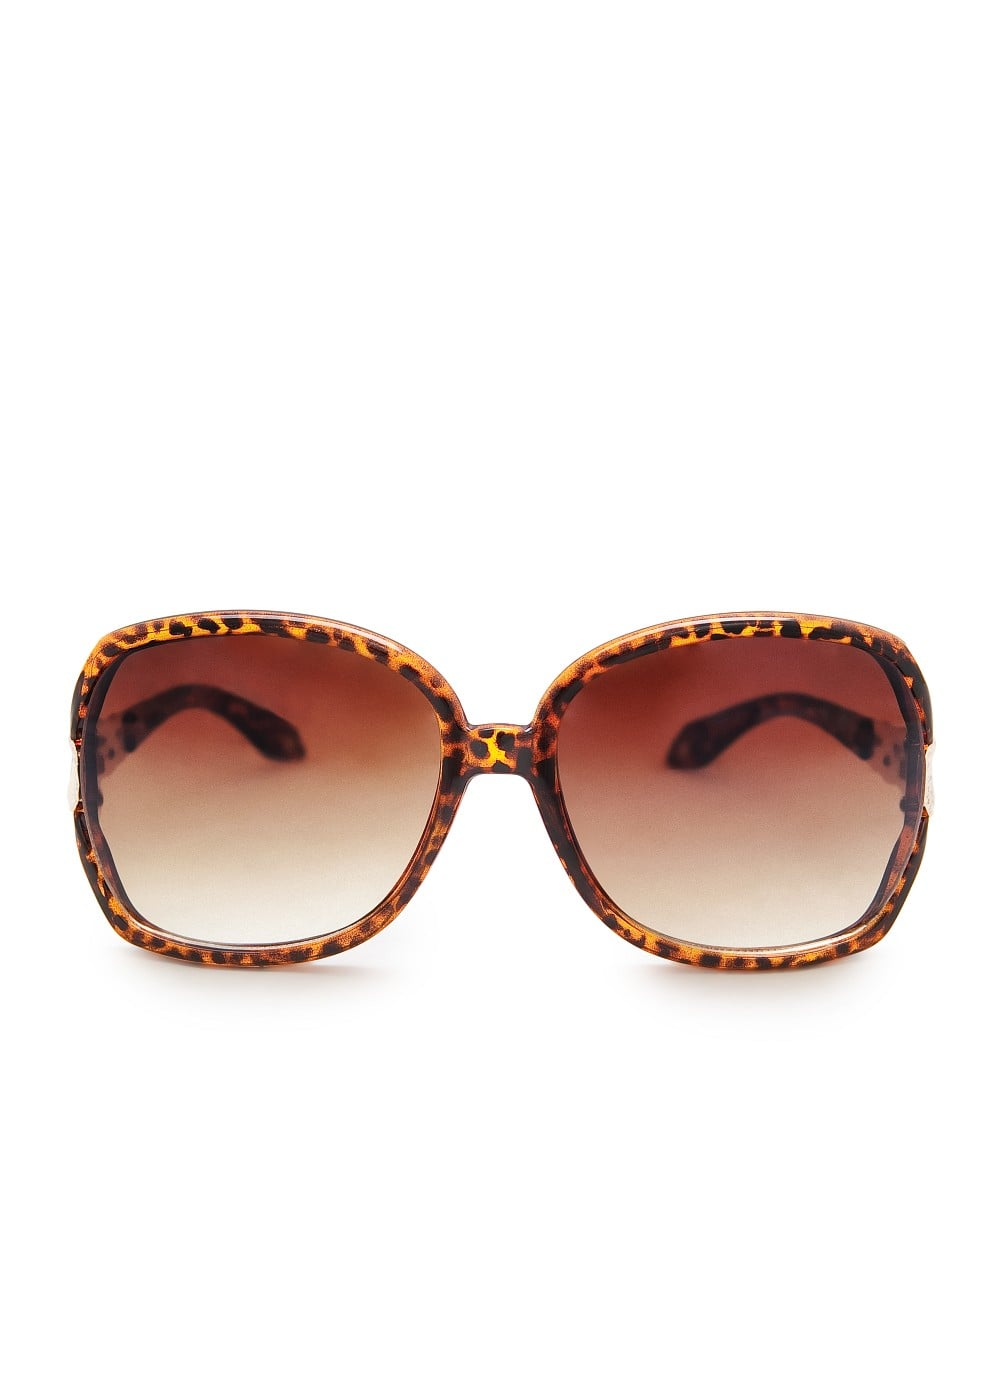 Braided appliqué sunglasses